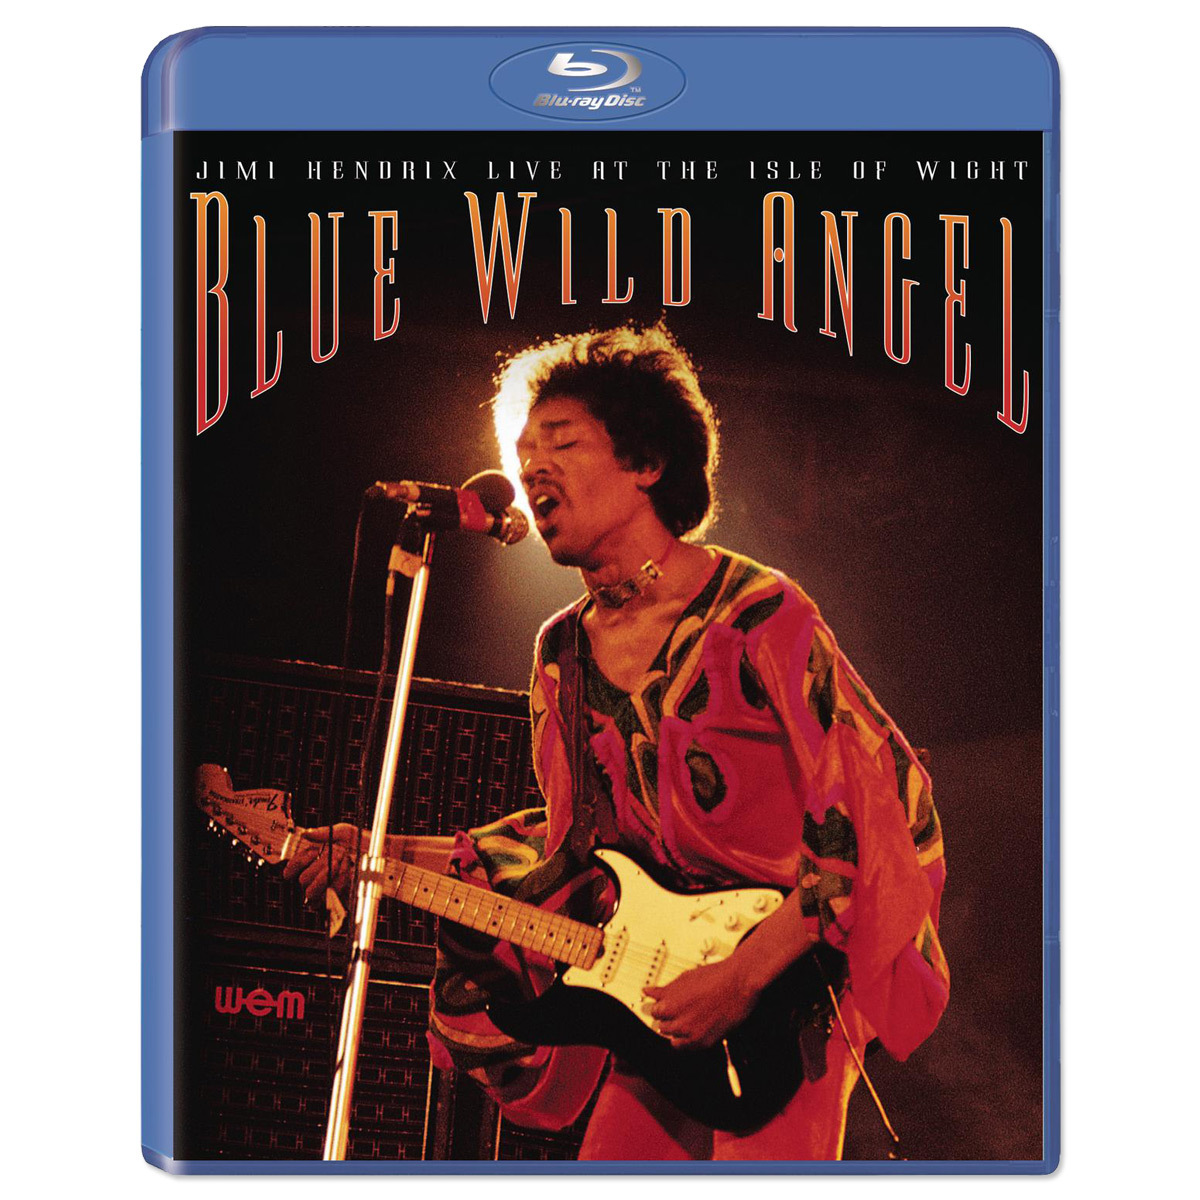 Jimi Hendrix Blue Wild Angel: Live at the Isle of Wight BluRay DVD